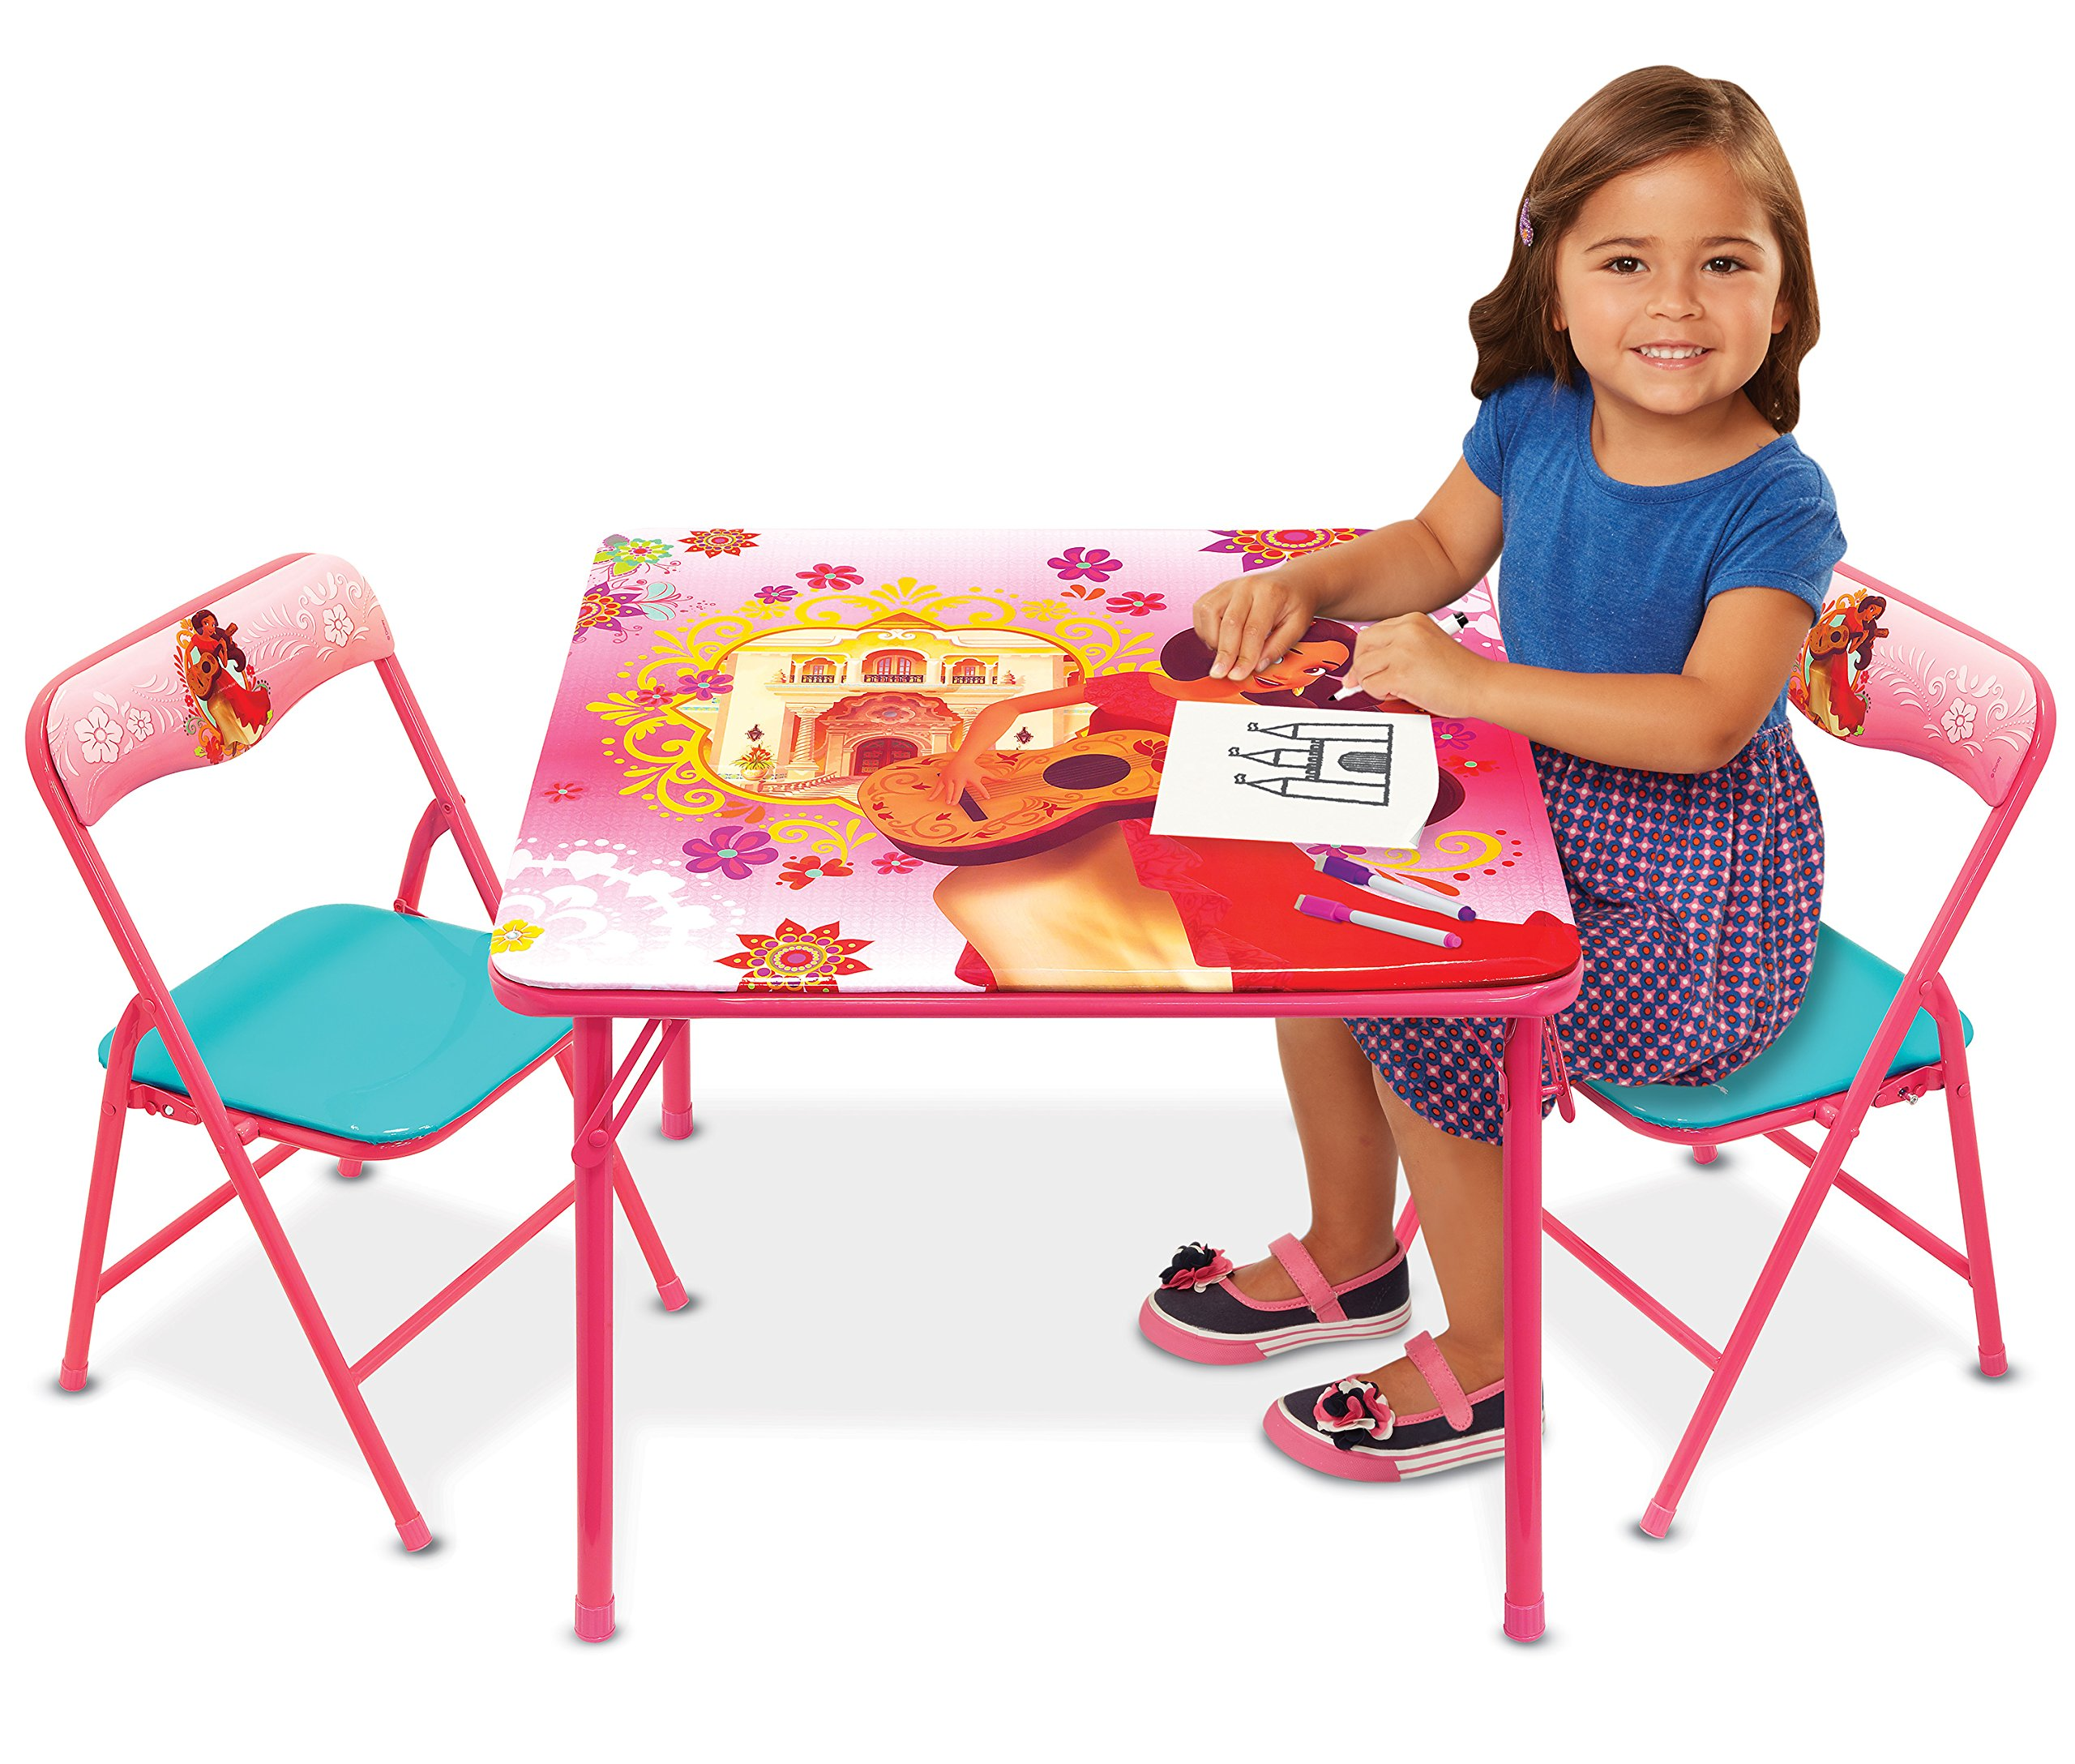 Elena of Avalor Activity Table Playset by Disney